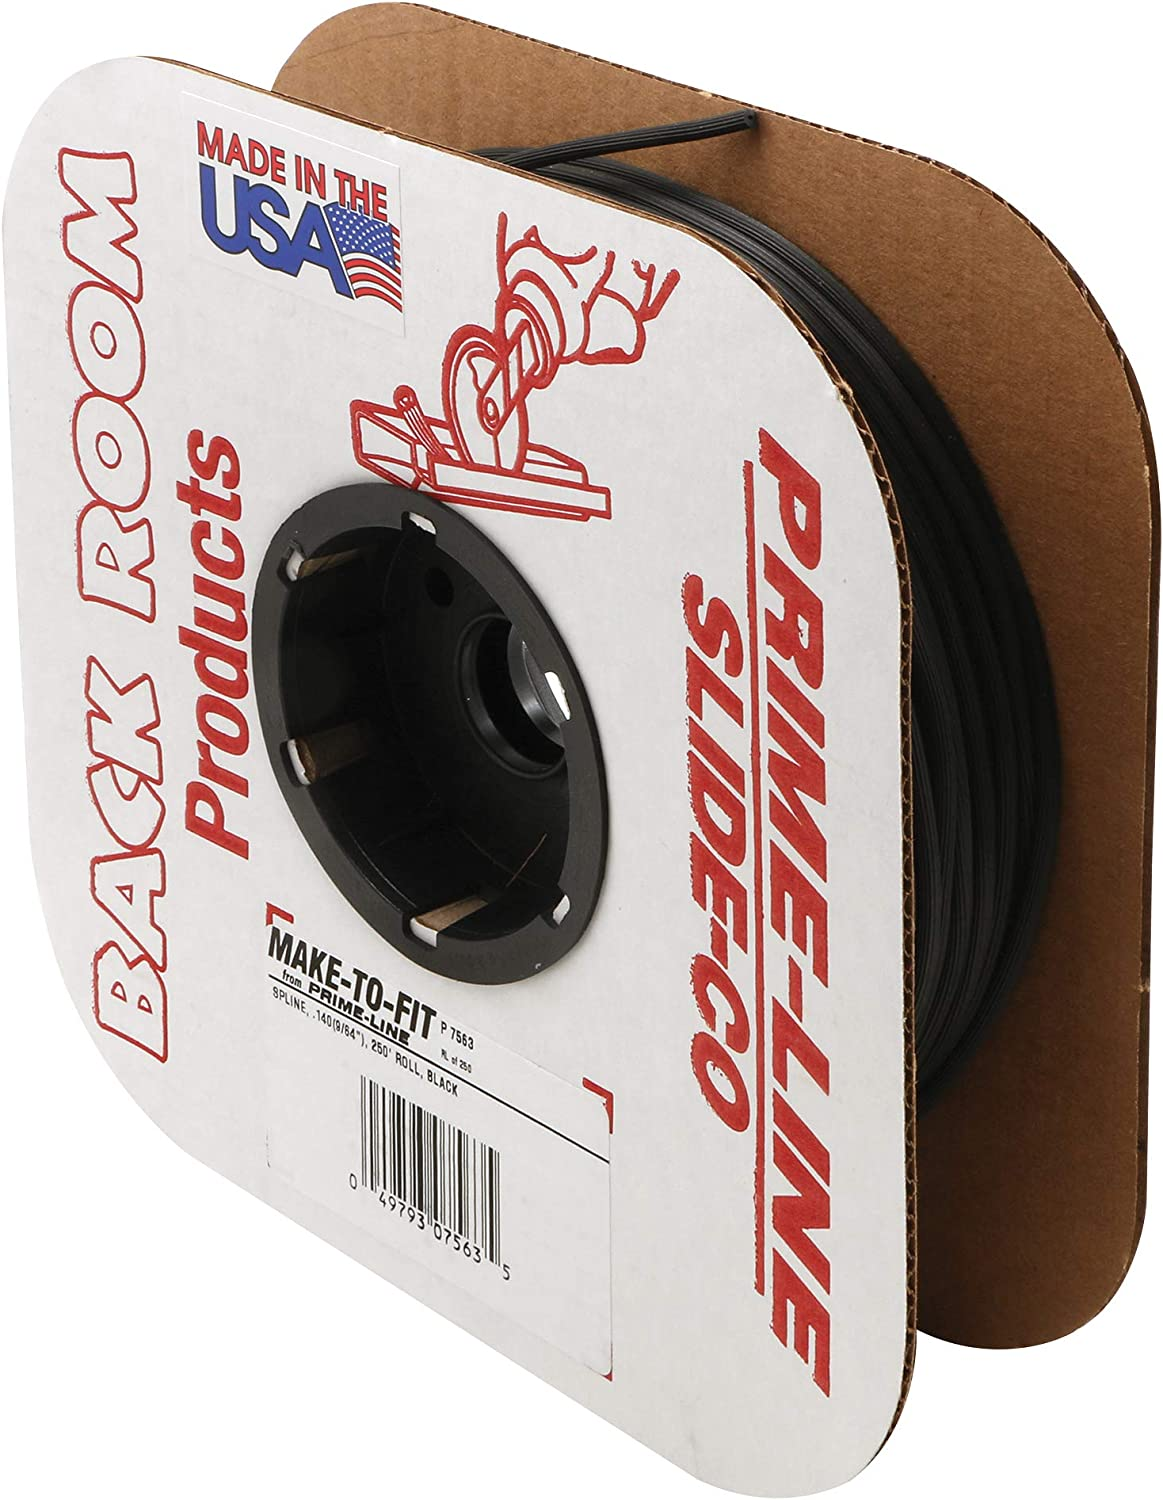 Prime-Line Products P 7563 Screen Retainer Spline, .140-in(9/64-in), 250-ft Roll, Black (packaging may vary)